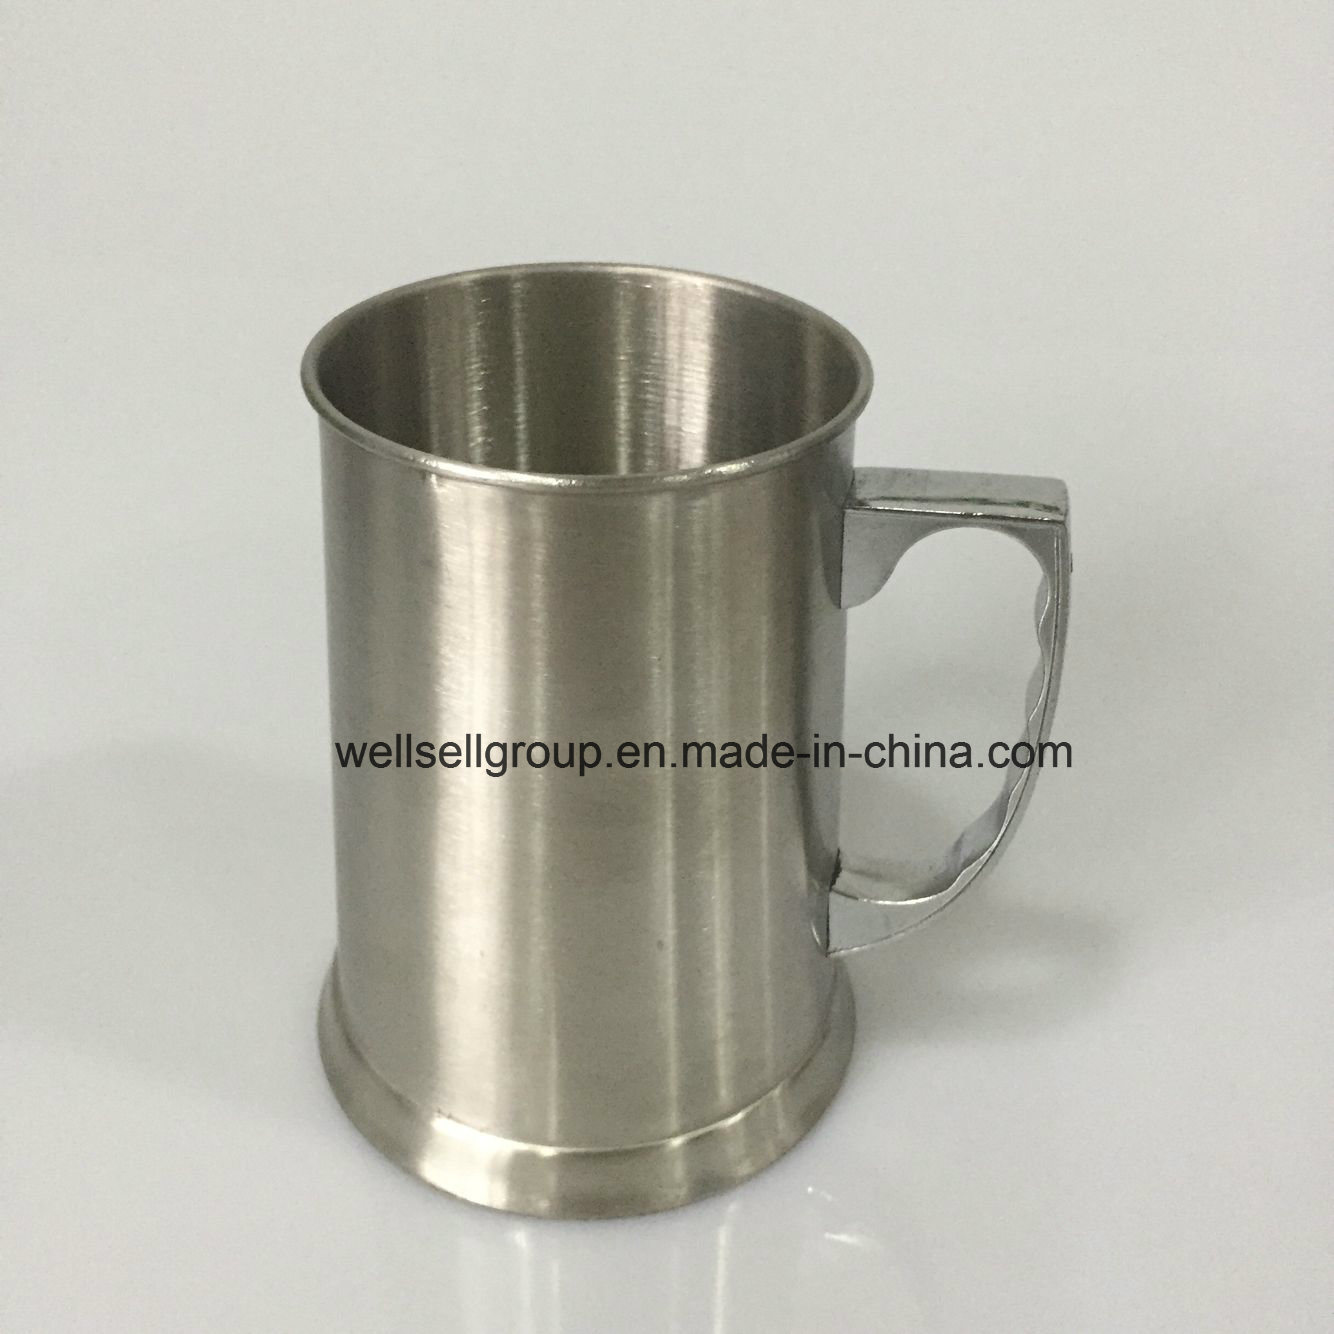 450ml Stainless Steel Tankard with Alloy Handle